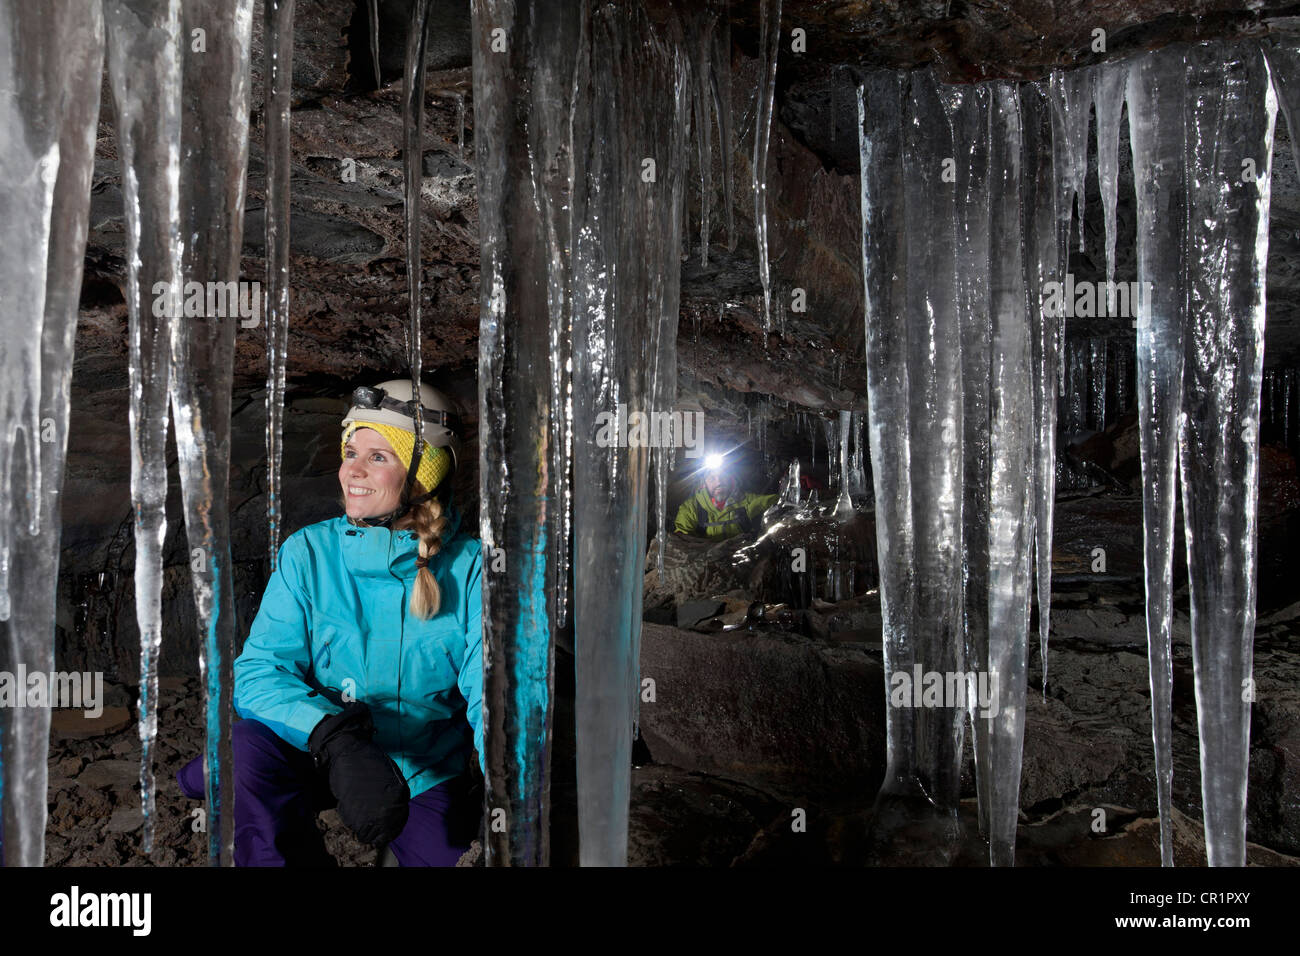 Hiker admiring icicles in cave - Stock Image